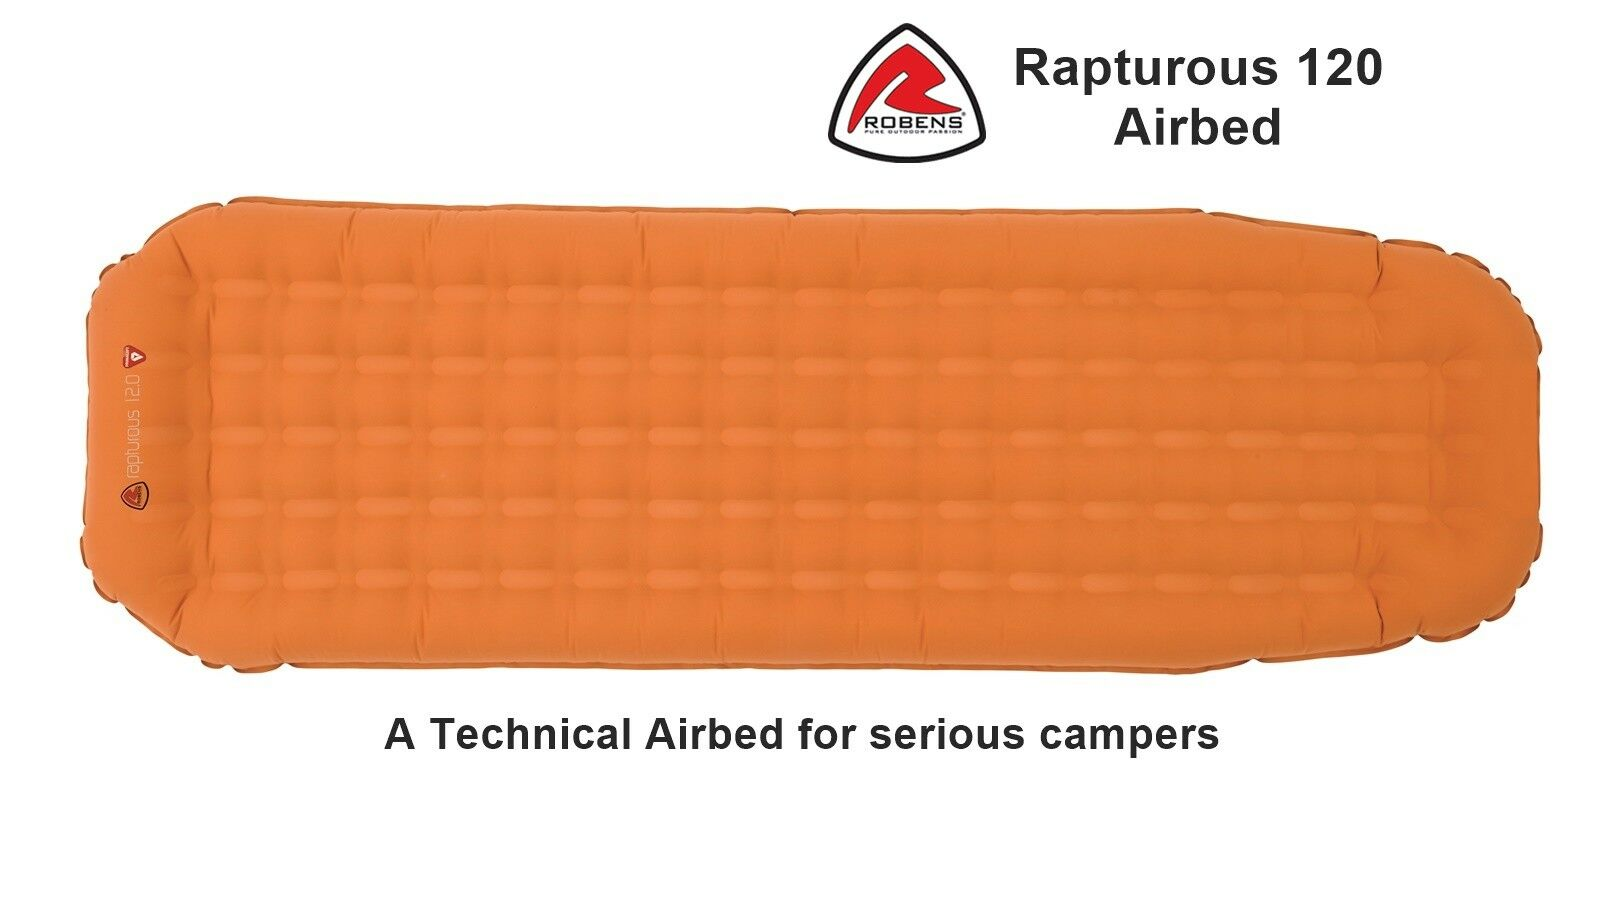 Robens Rapturous 120 Airbed - A Technical Airbed for serious campers